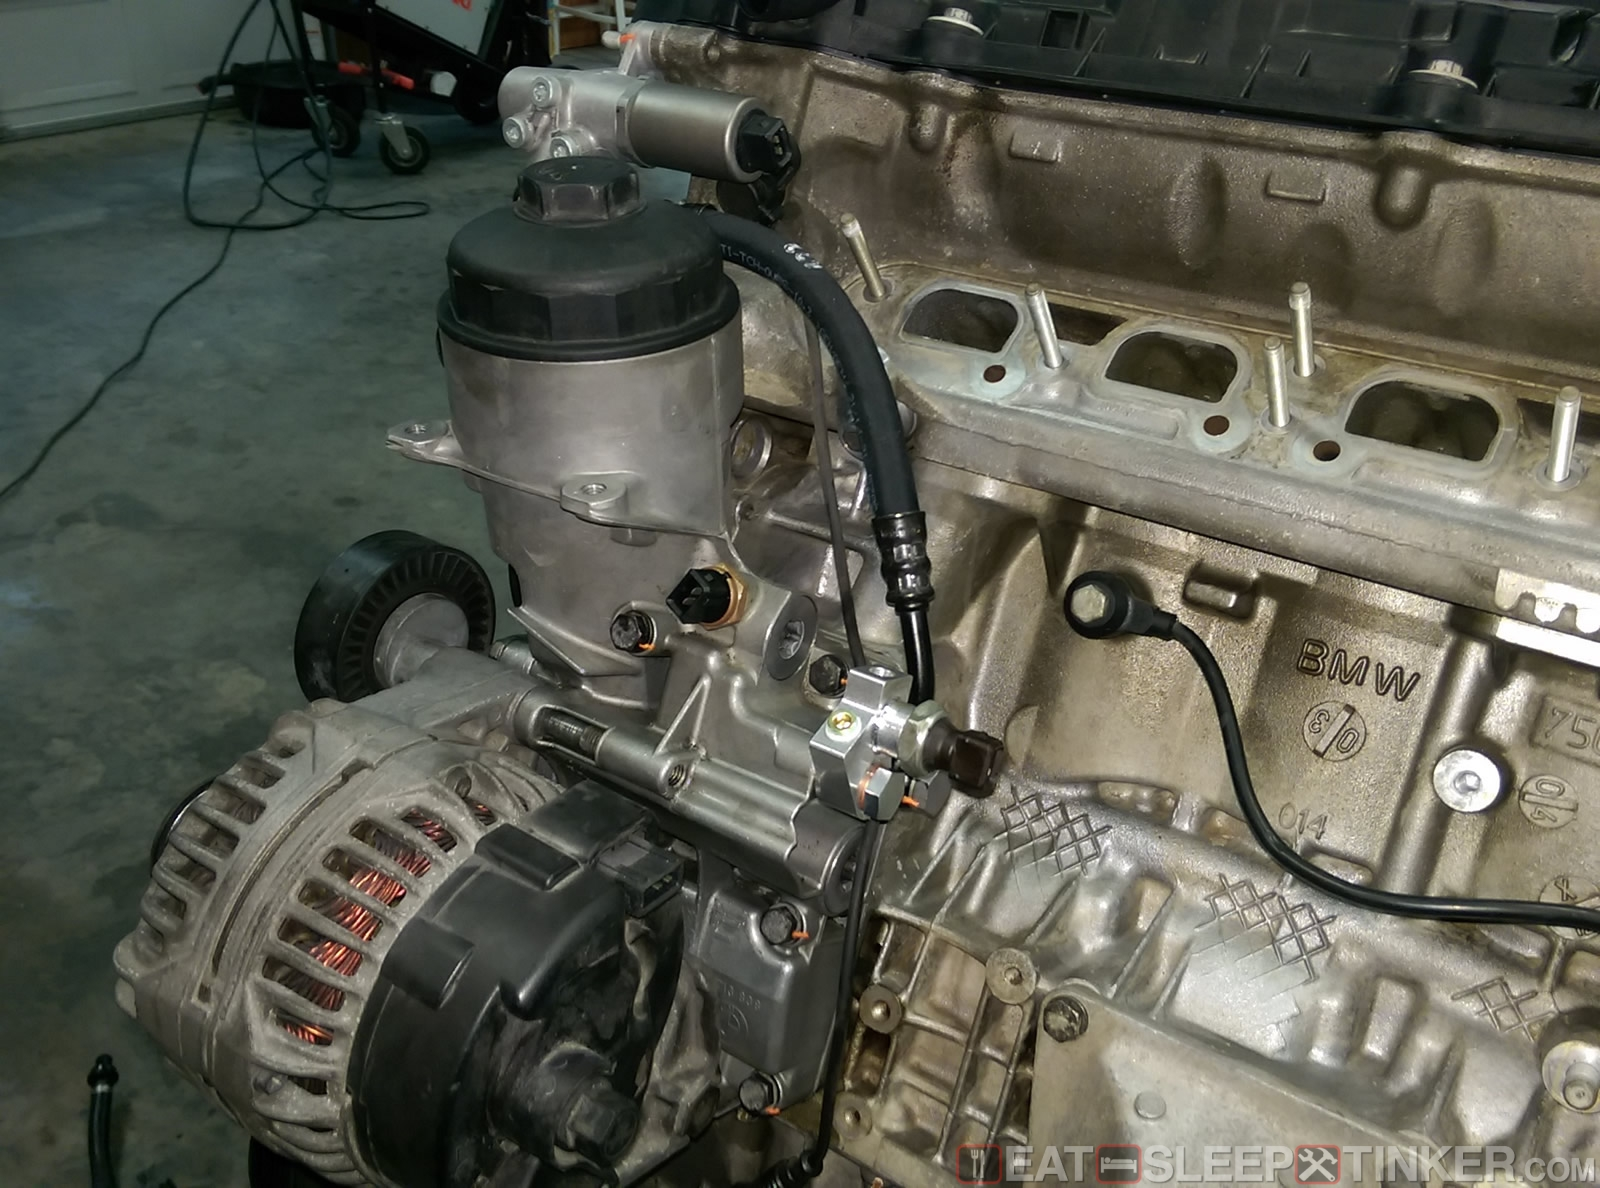 Eat, Sleep, Tinker Spec E46 Build Part VI: Engine - Eat